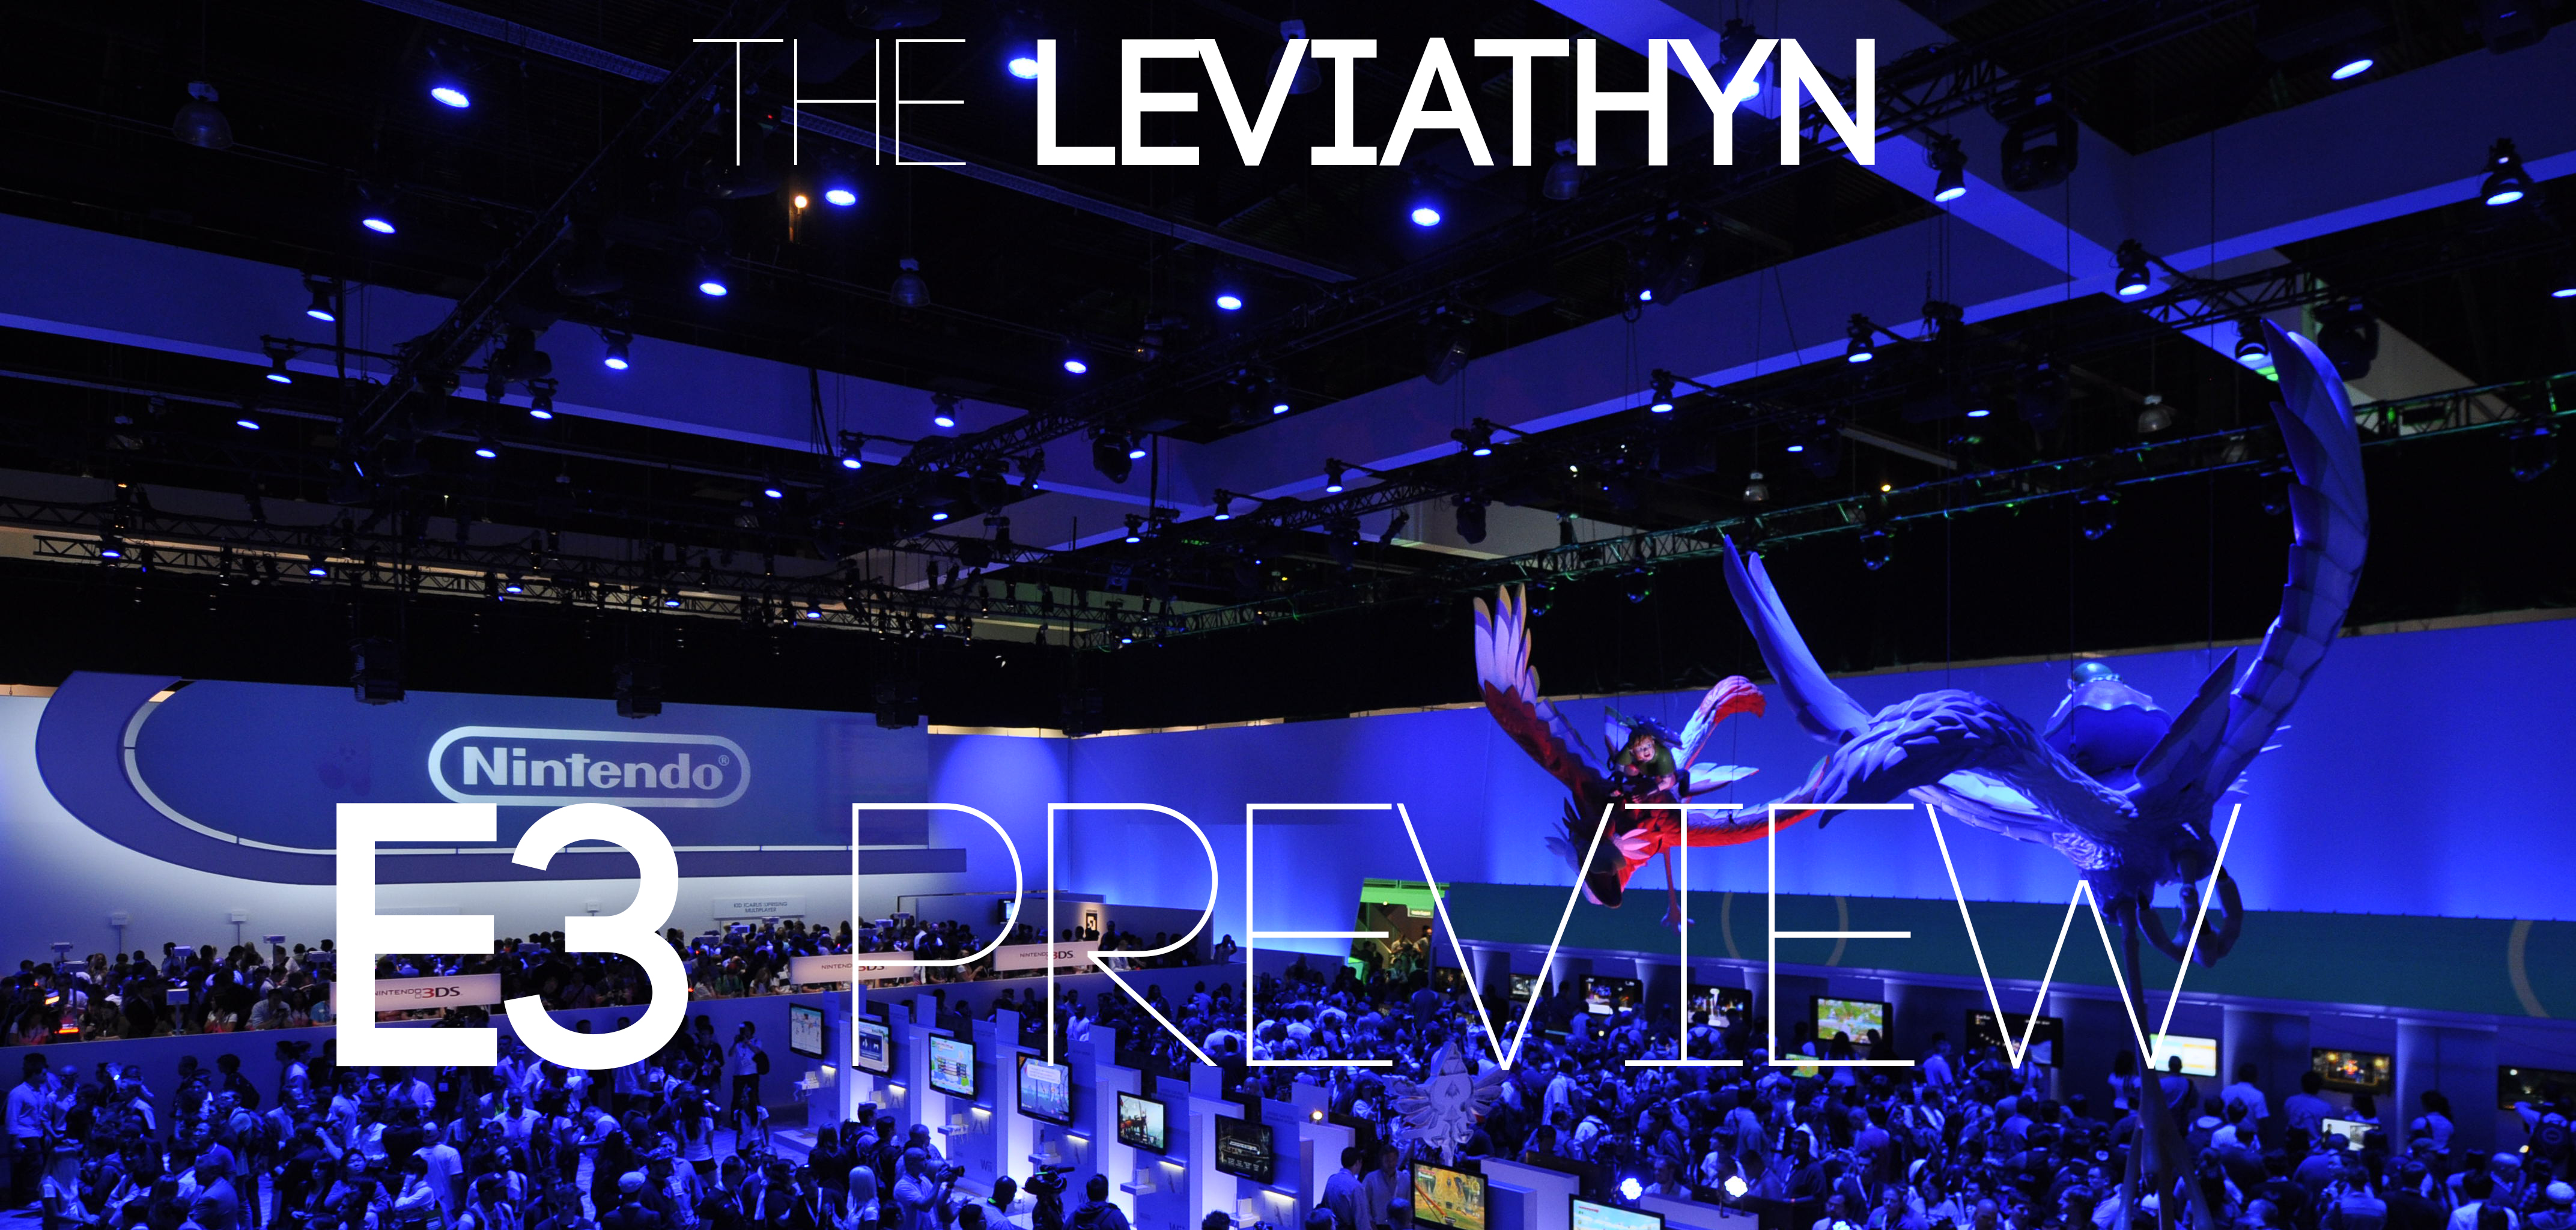 Leviathyn's Complete E3 2013 Preview: The Games, The Press Conferences, And More!